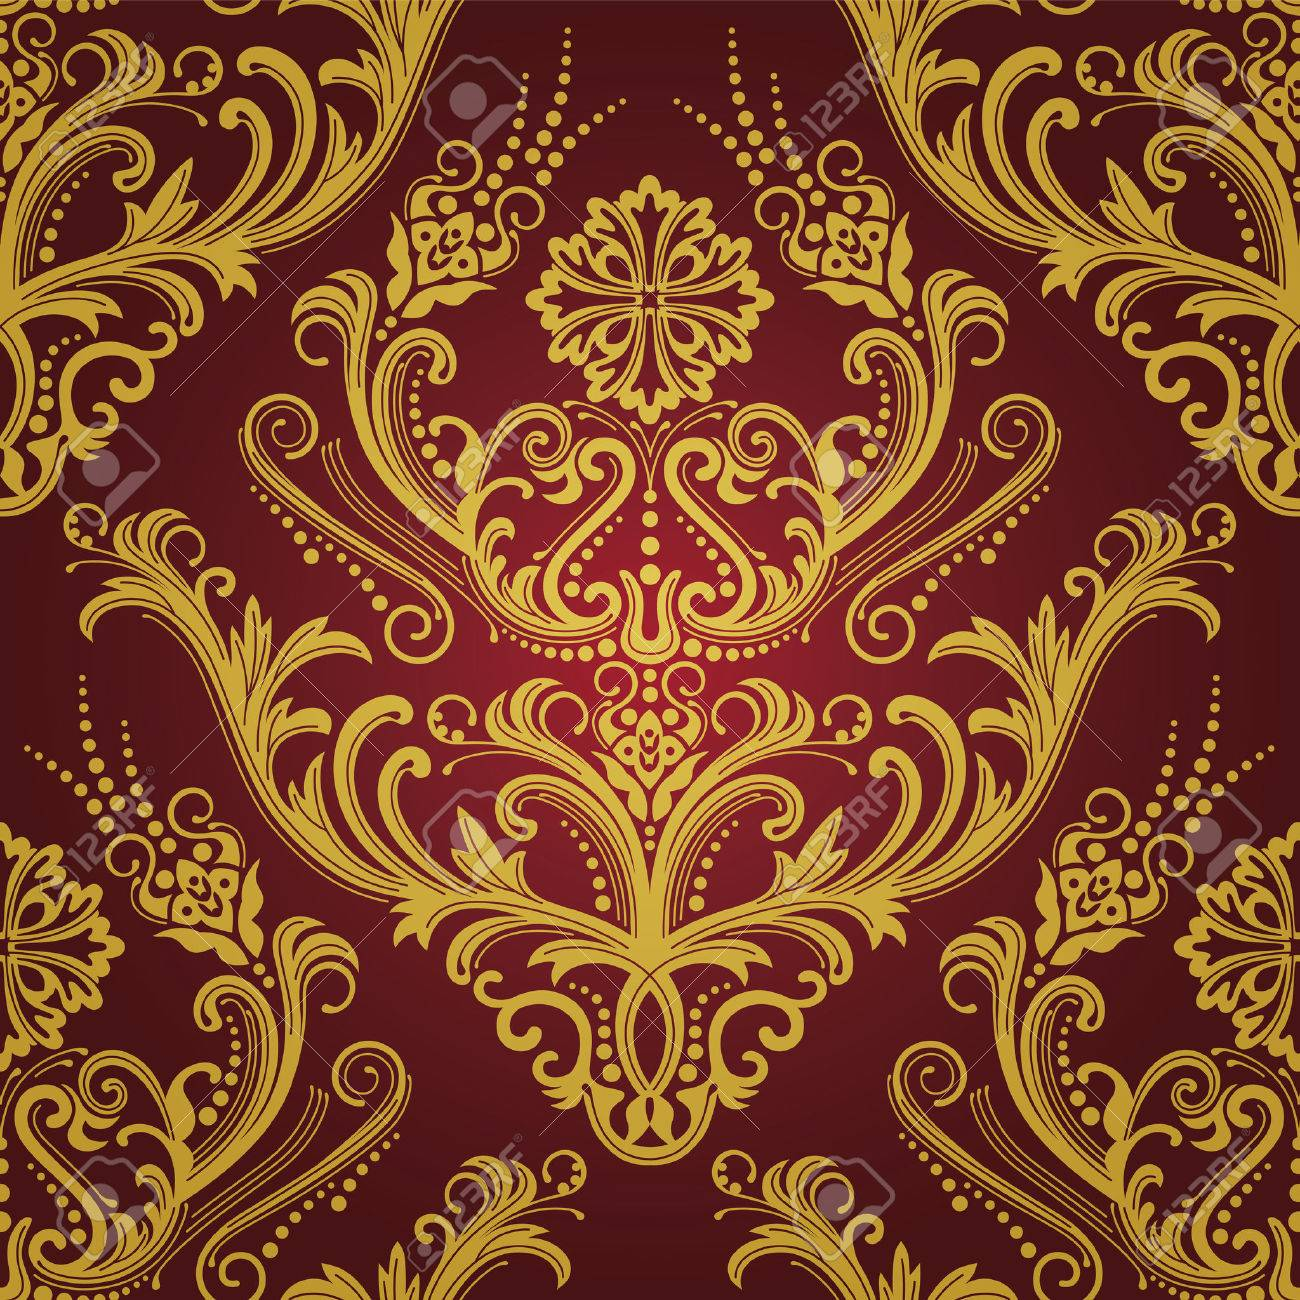 Luxury Red Gold Floral Damask Wallpaper Royalty Free Cliparts